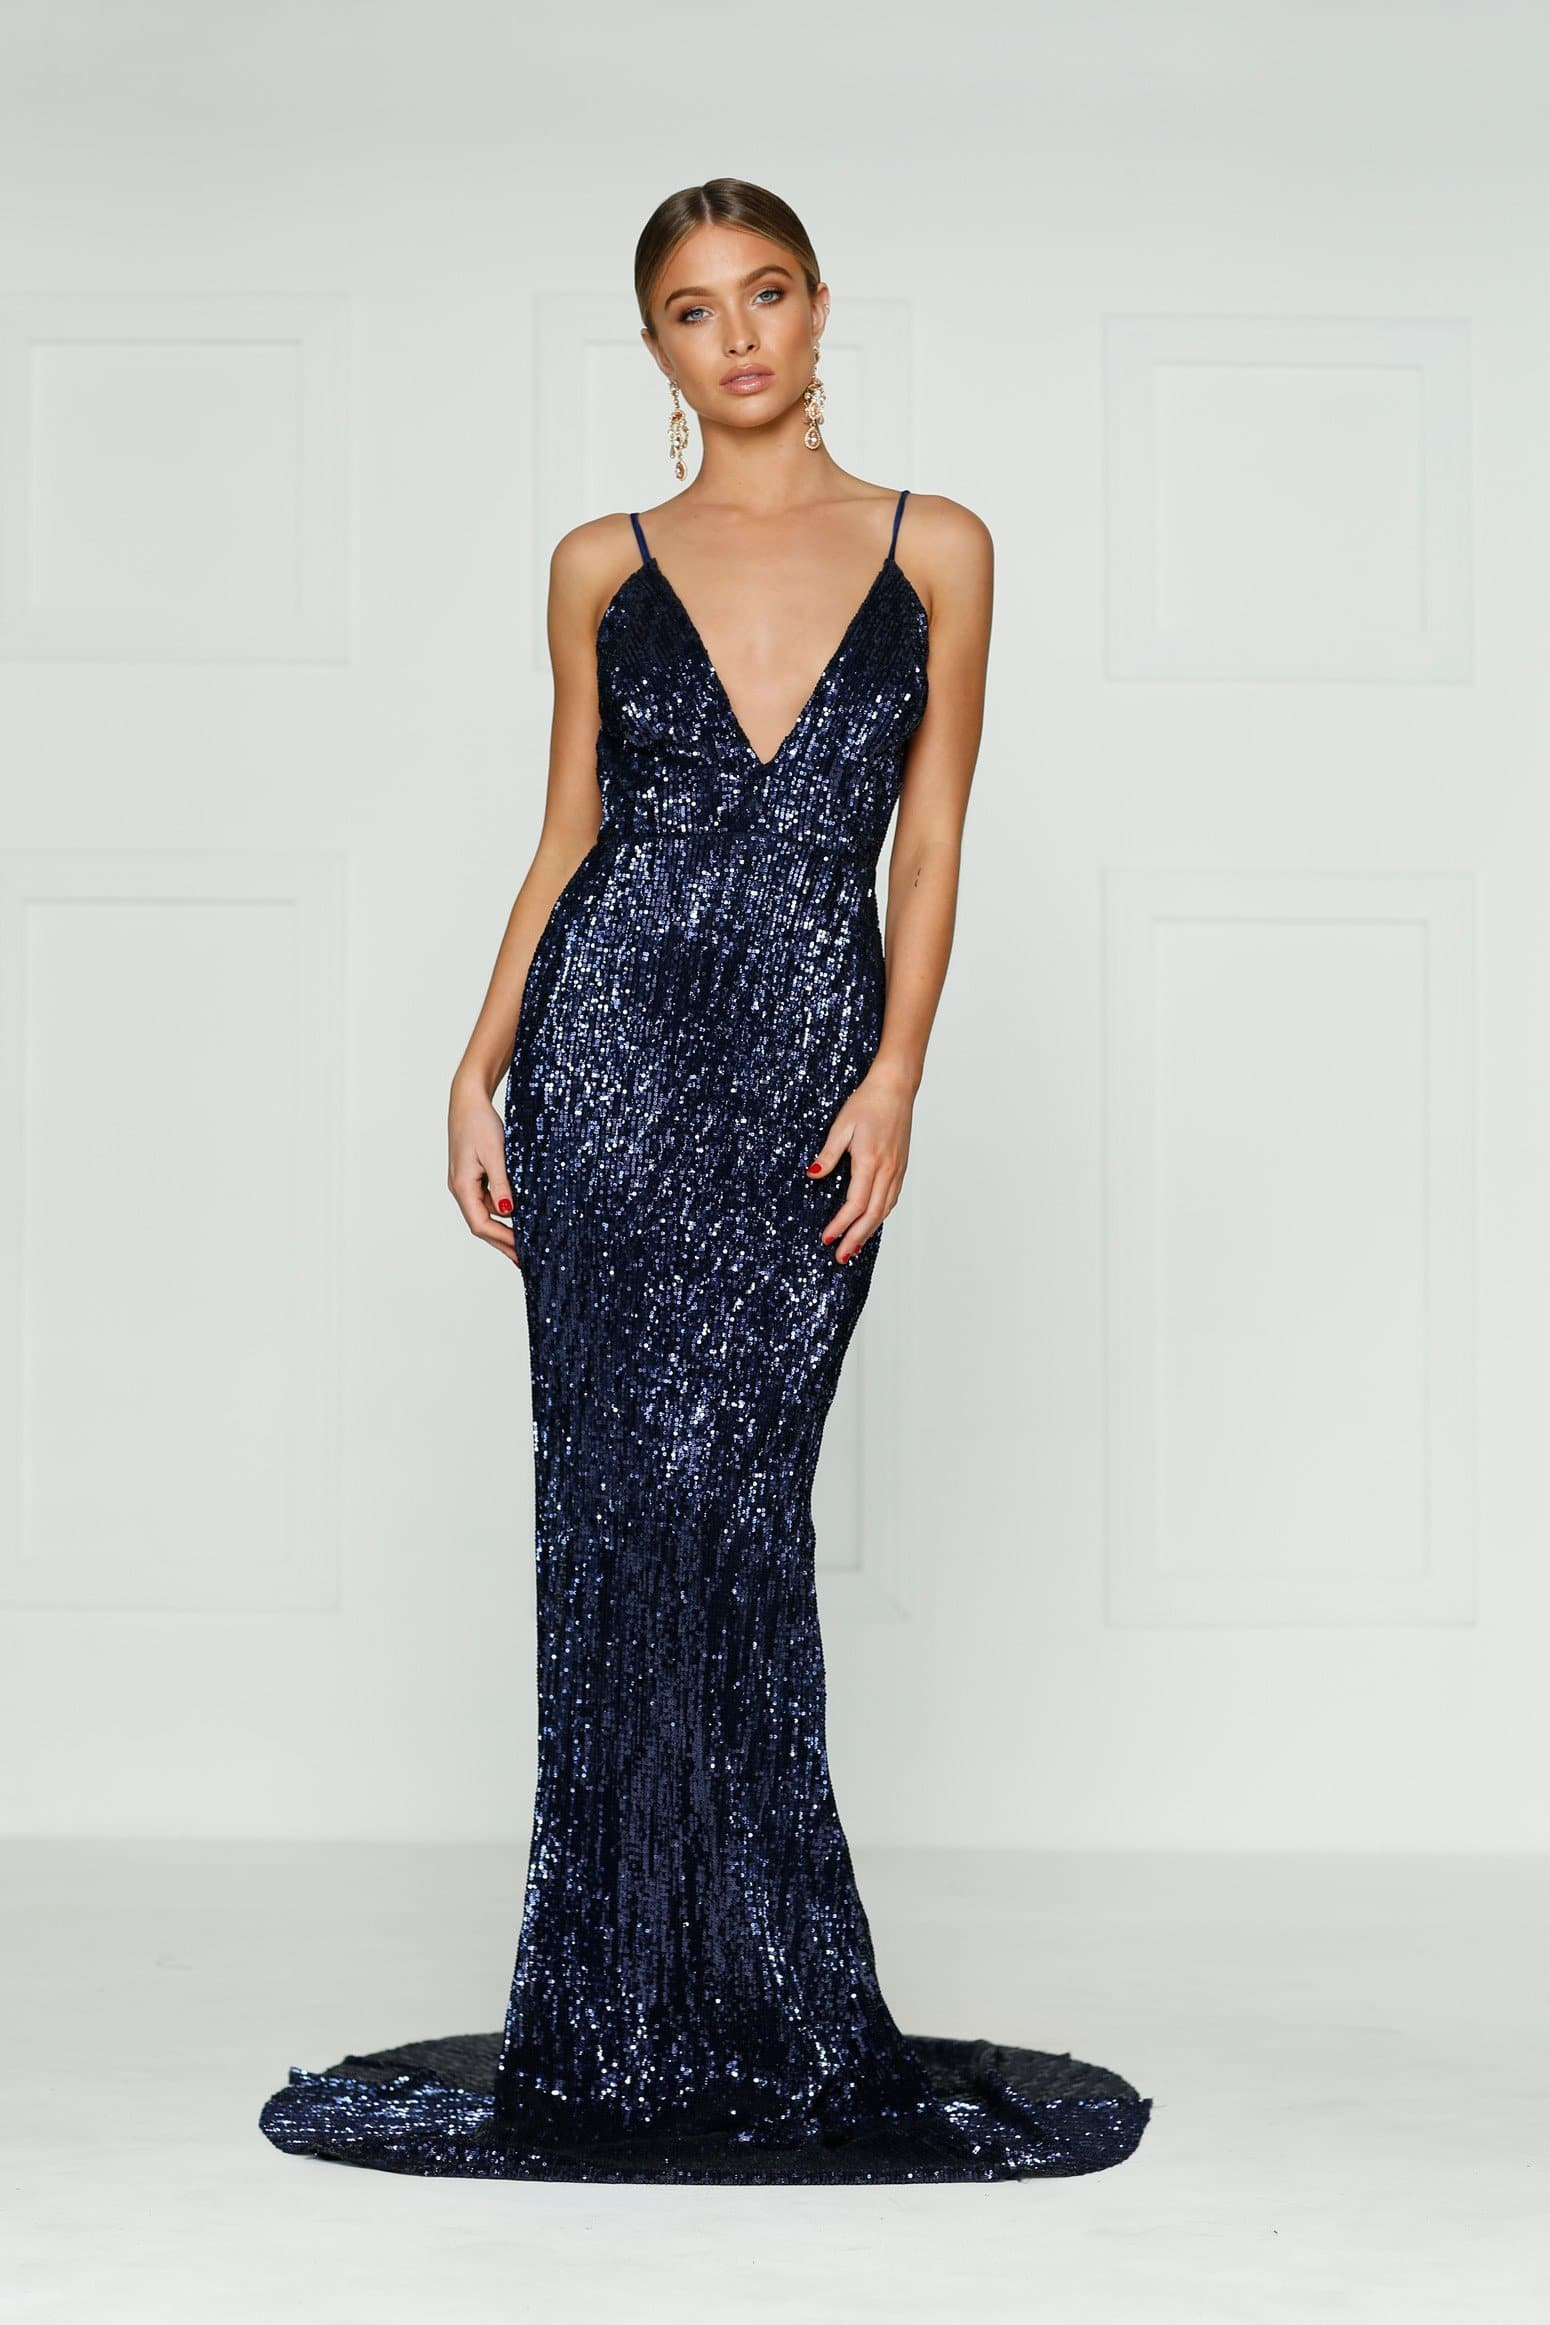 A&N Cynthia - Navy Sparkling Dress with V Neck and Low Back